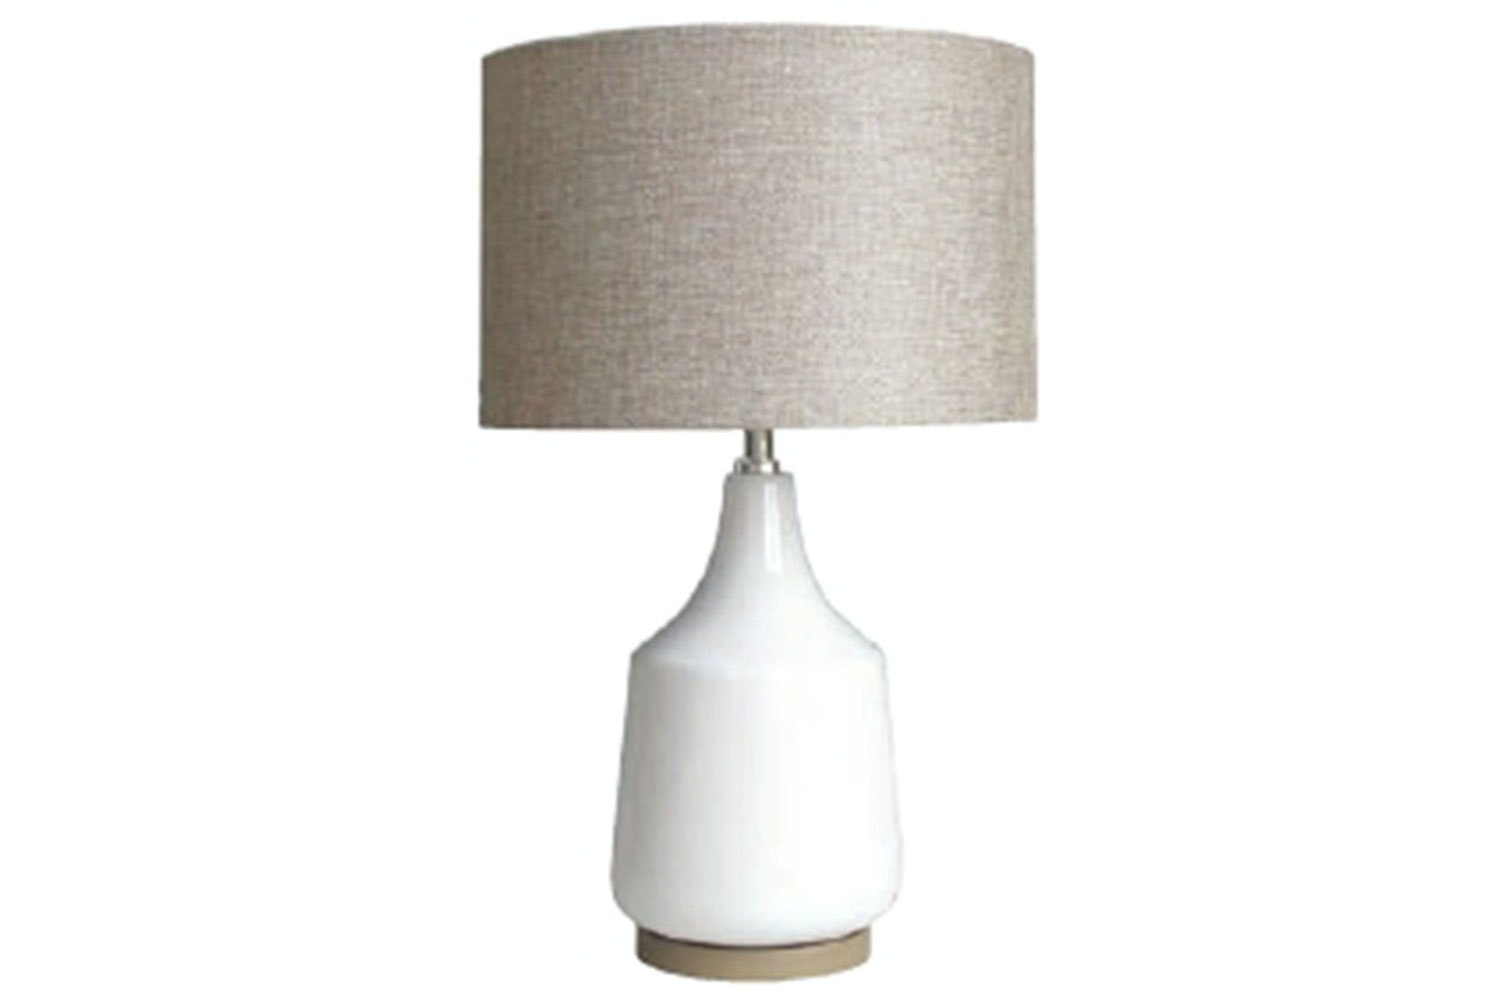 Torquay Table Lamp by Shady Lady